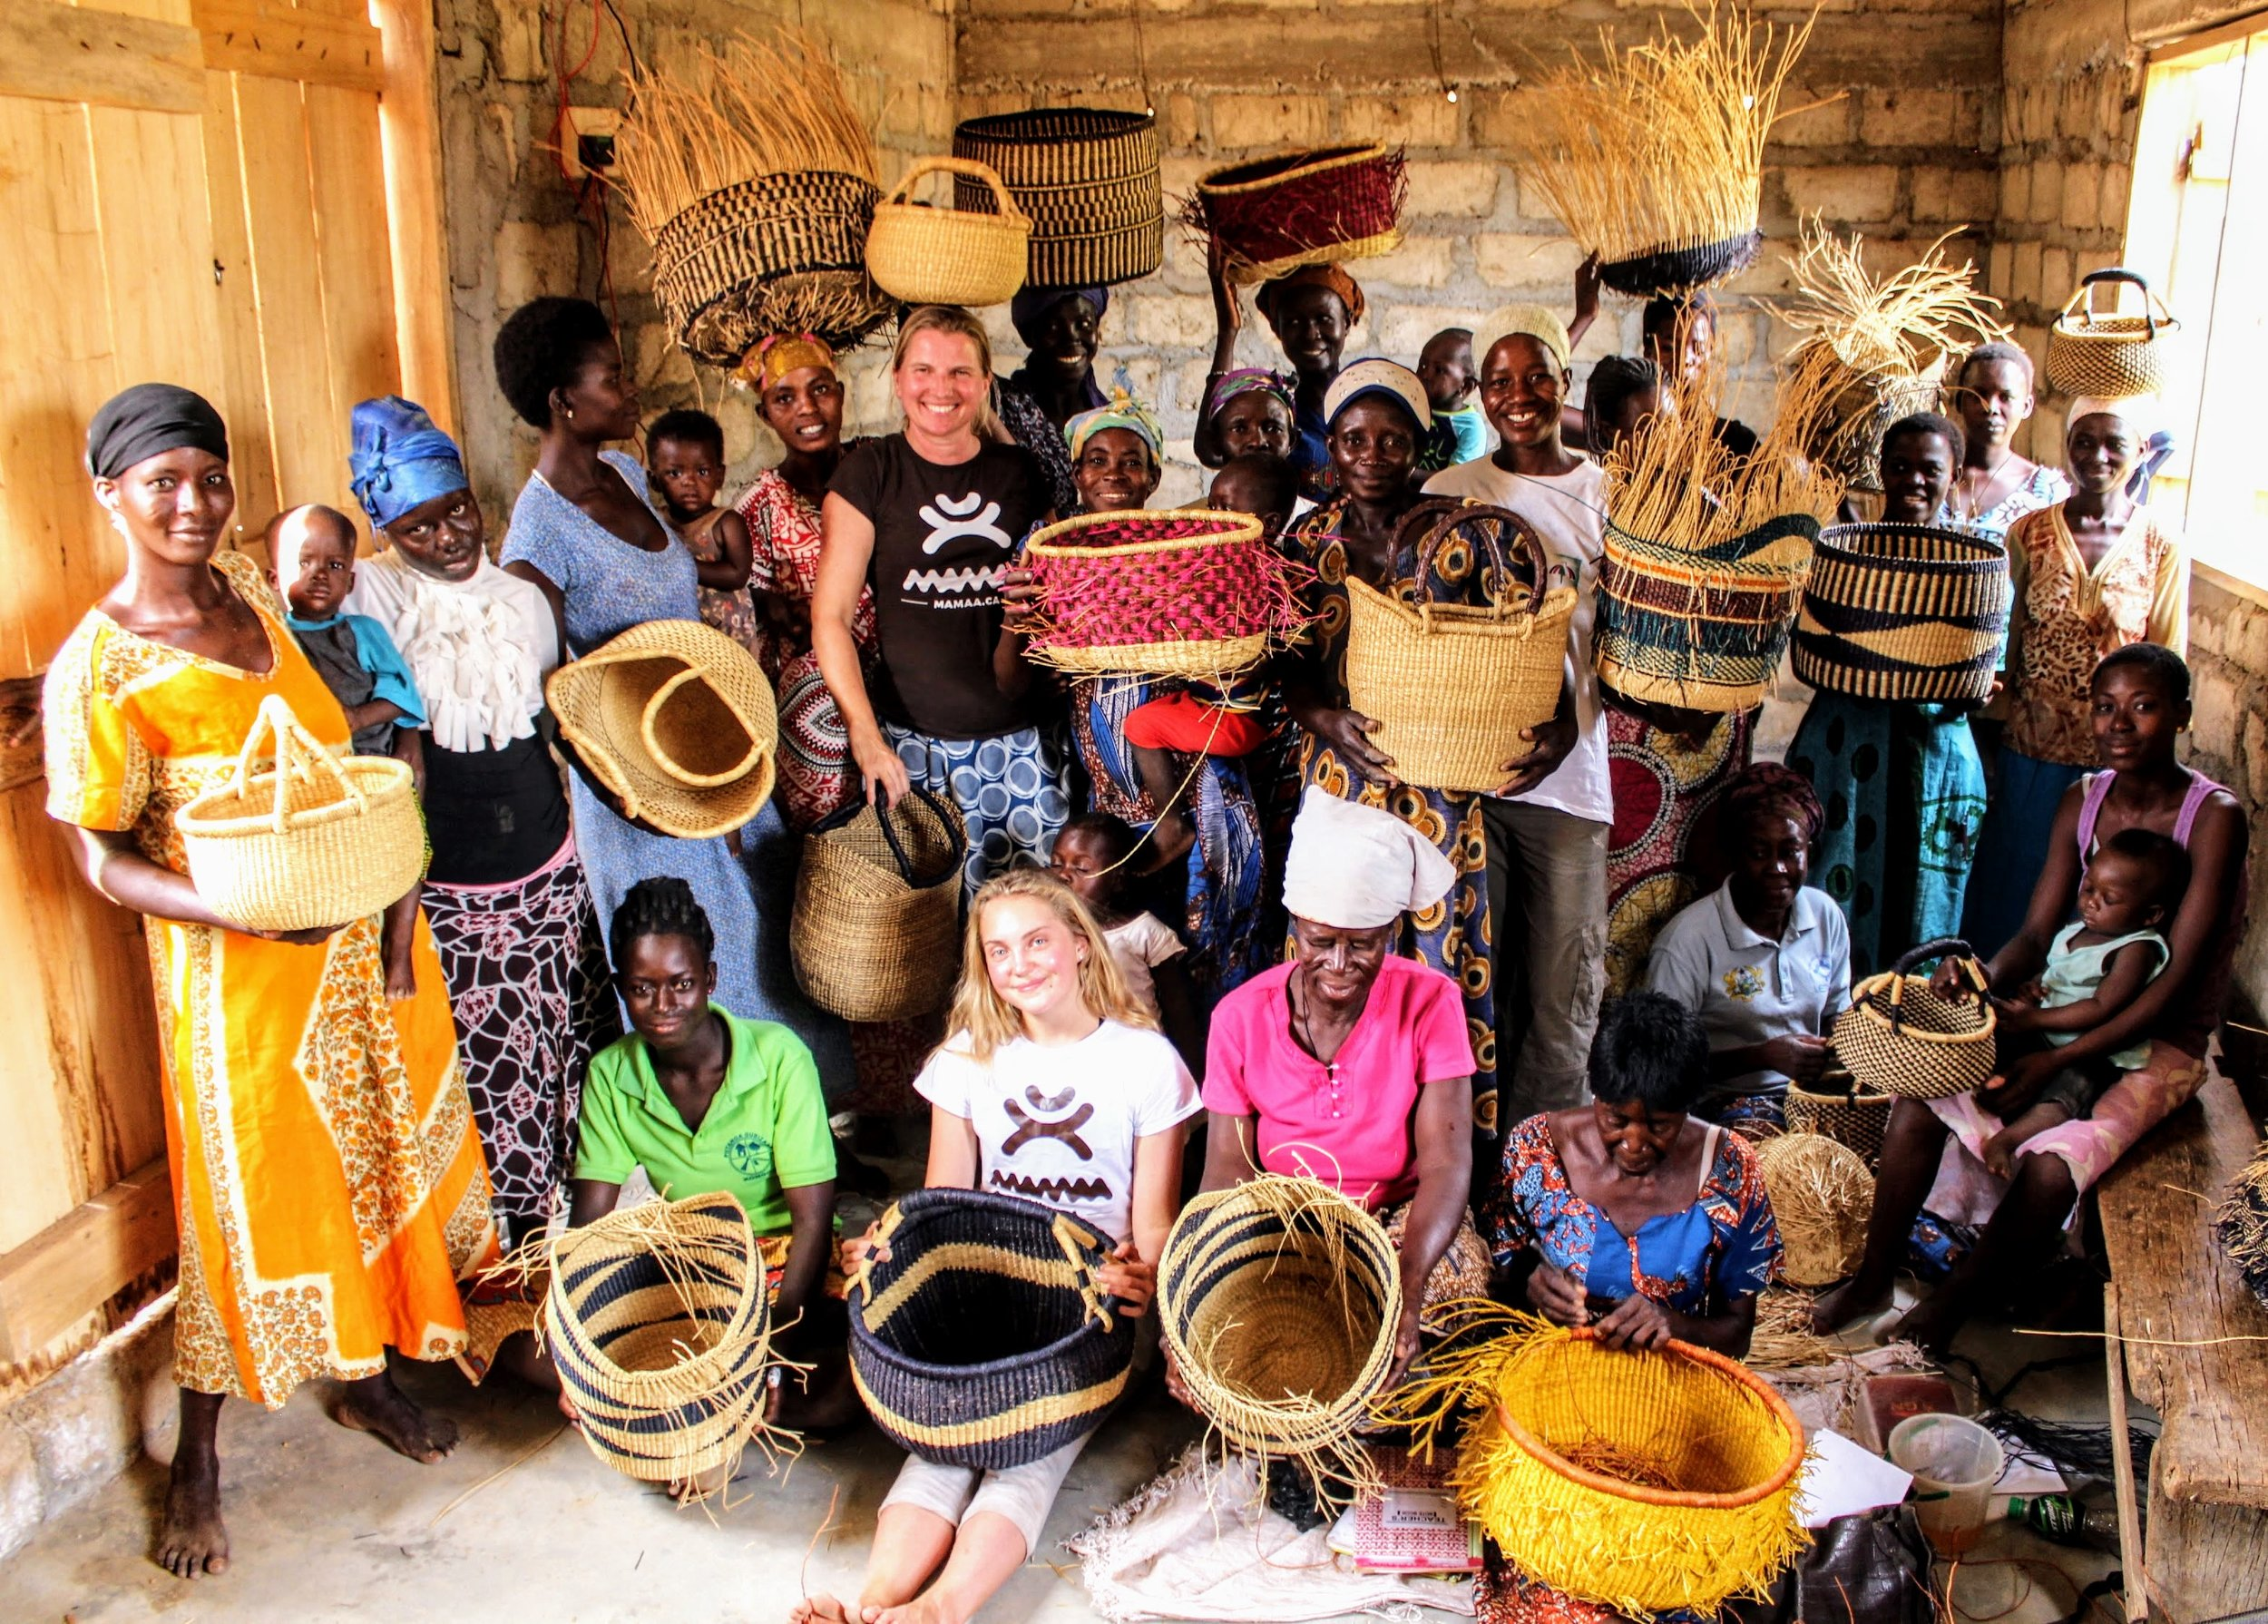 Meeting with basket women. Five years ago there were only a handful of women weaving under a tree. Now there are over 60 skilled women and the number is growing. The women also have their own centre for weaving. :-)